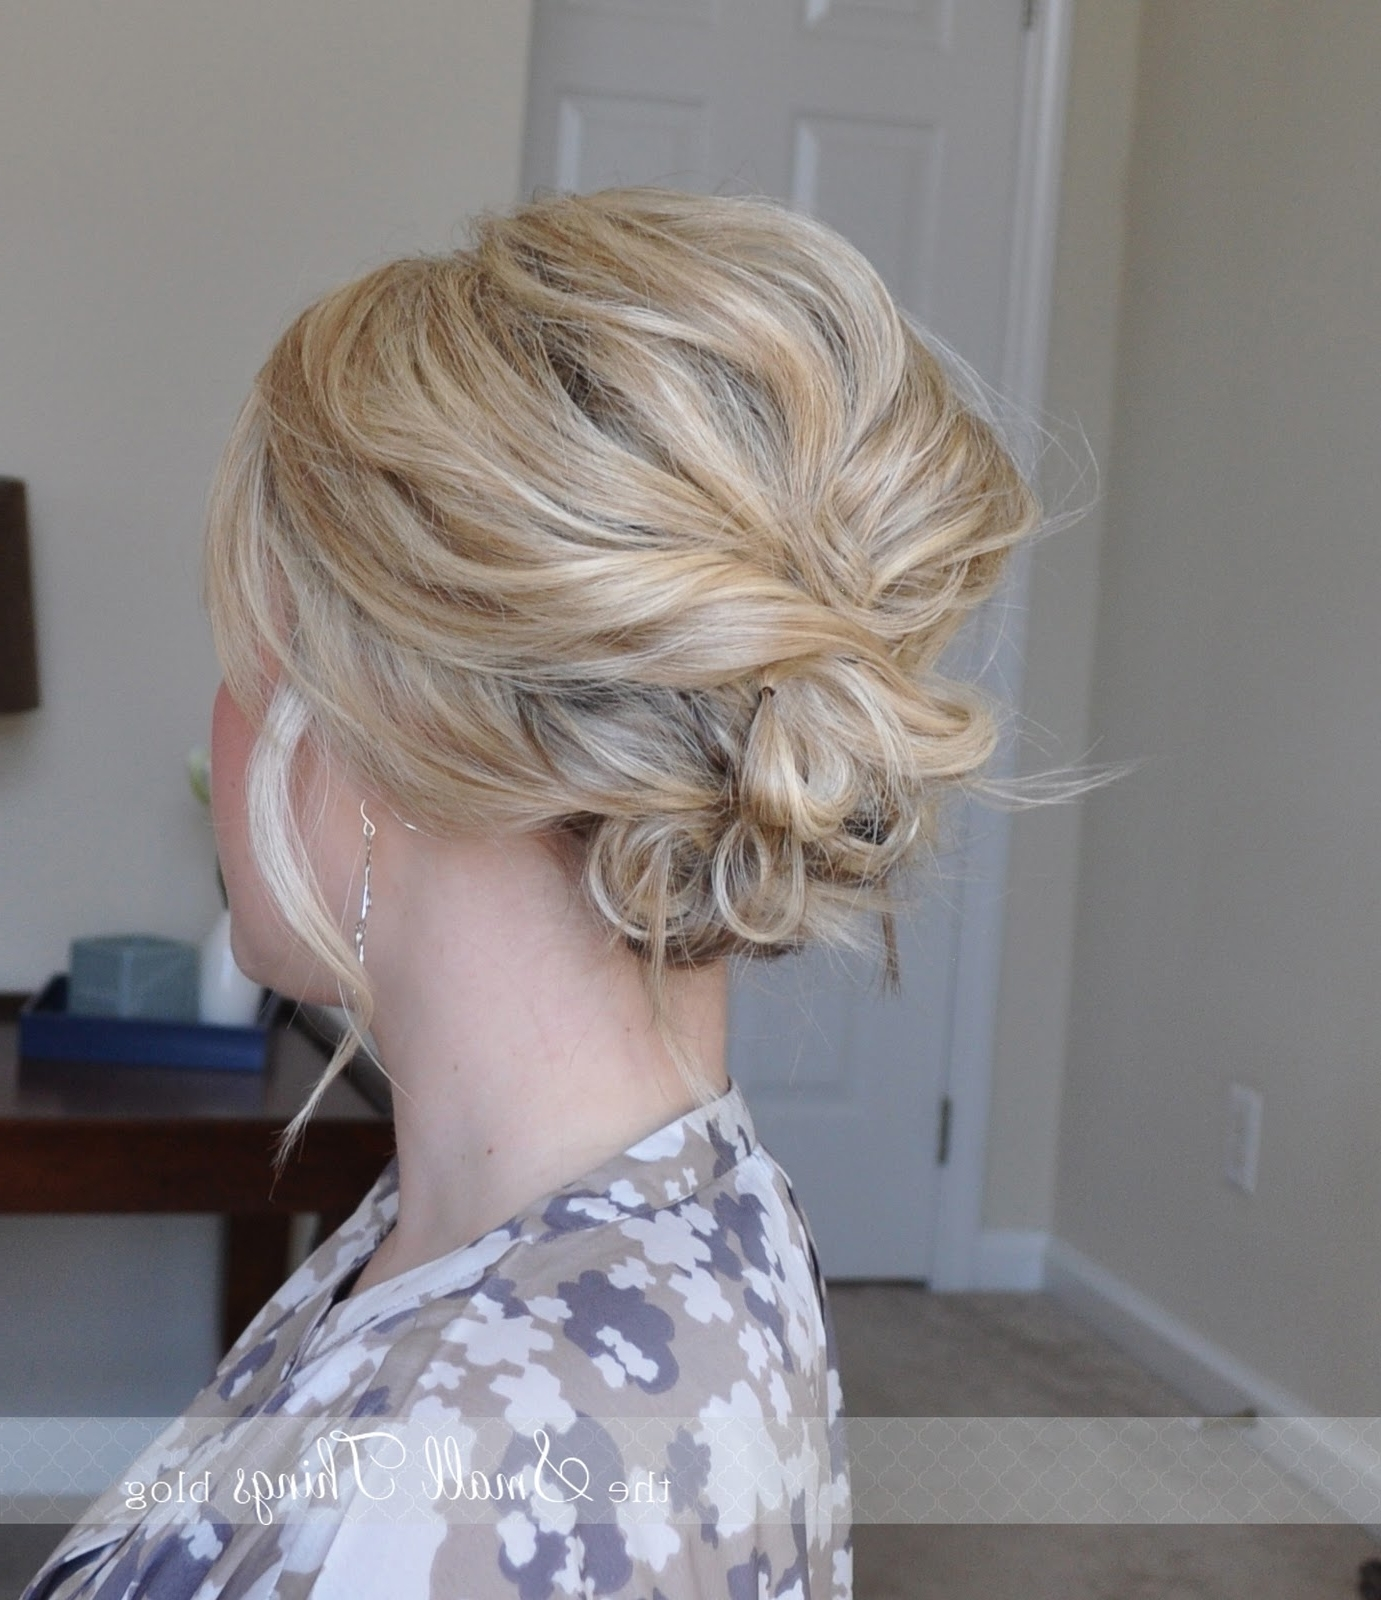 Beach Wedding Hairstyles For Medium Length Hair – Hairstyle For Inside Latest Beach Wedding Hairstyles For Short Hair (View 5 of 15)